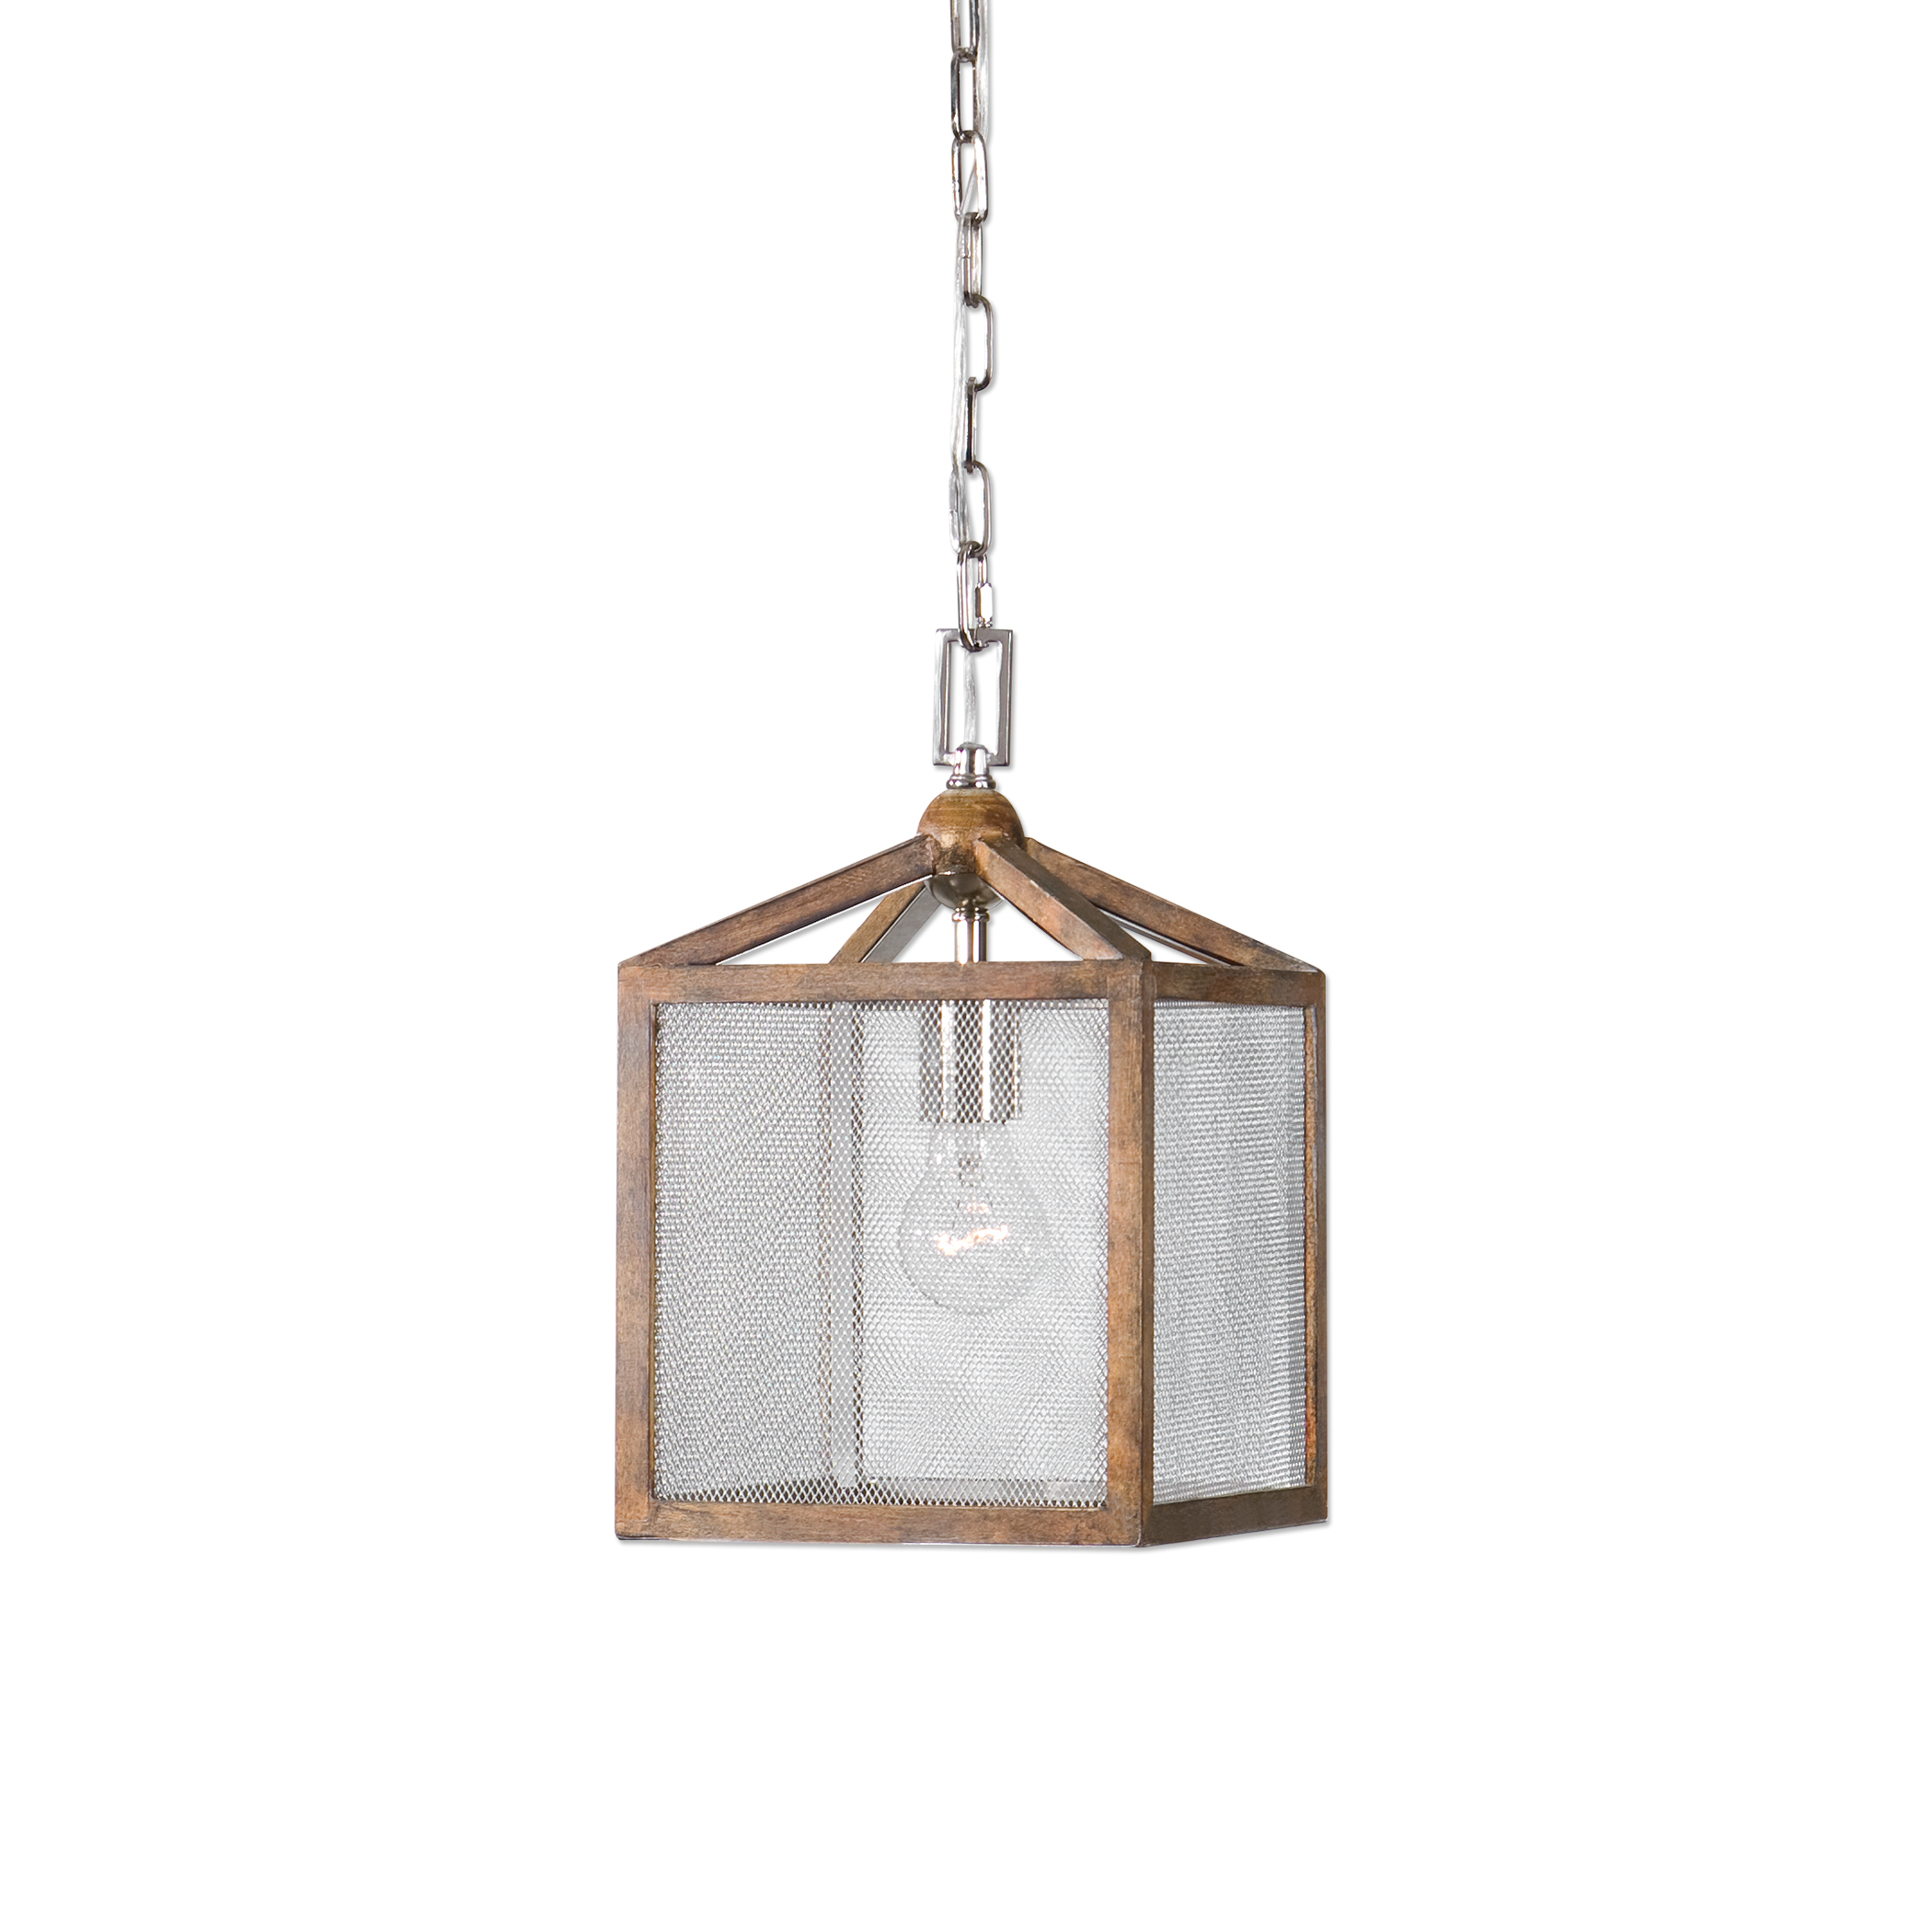 Uttermost Lighting Fixtures Nashua Wooden 1 Light Mini Pendant - Item Number: 22080